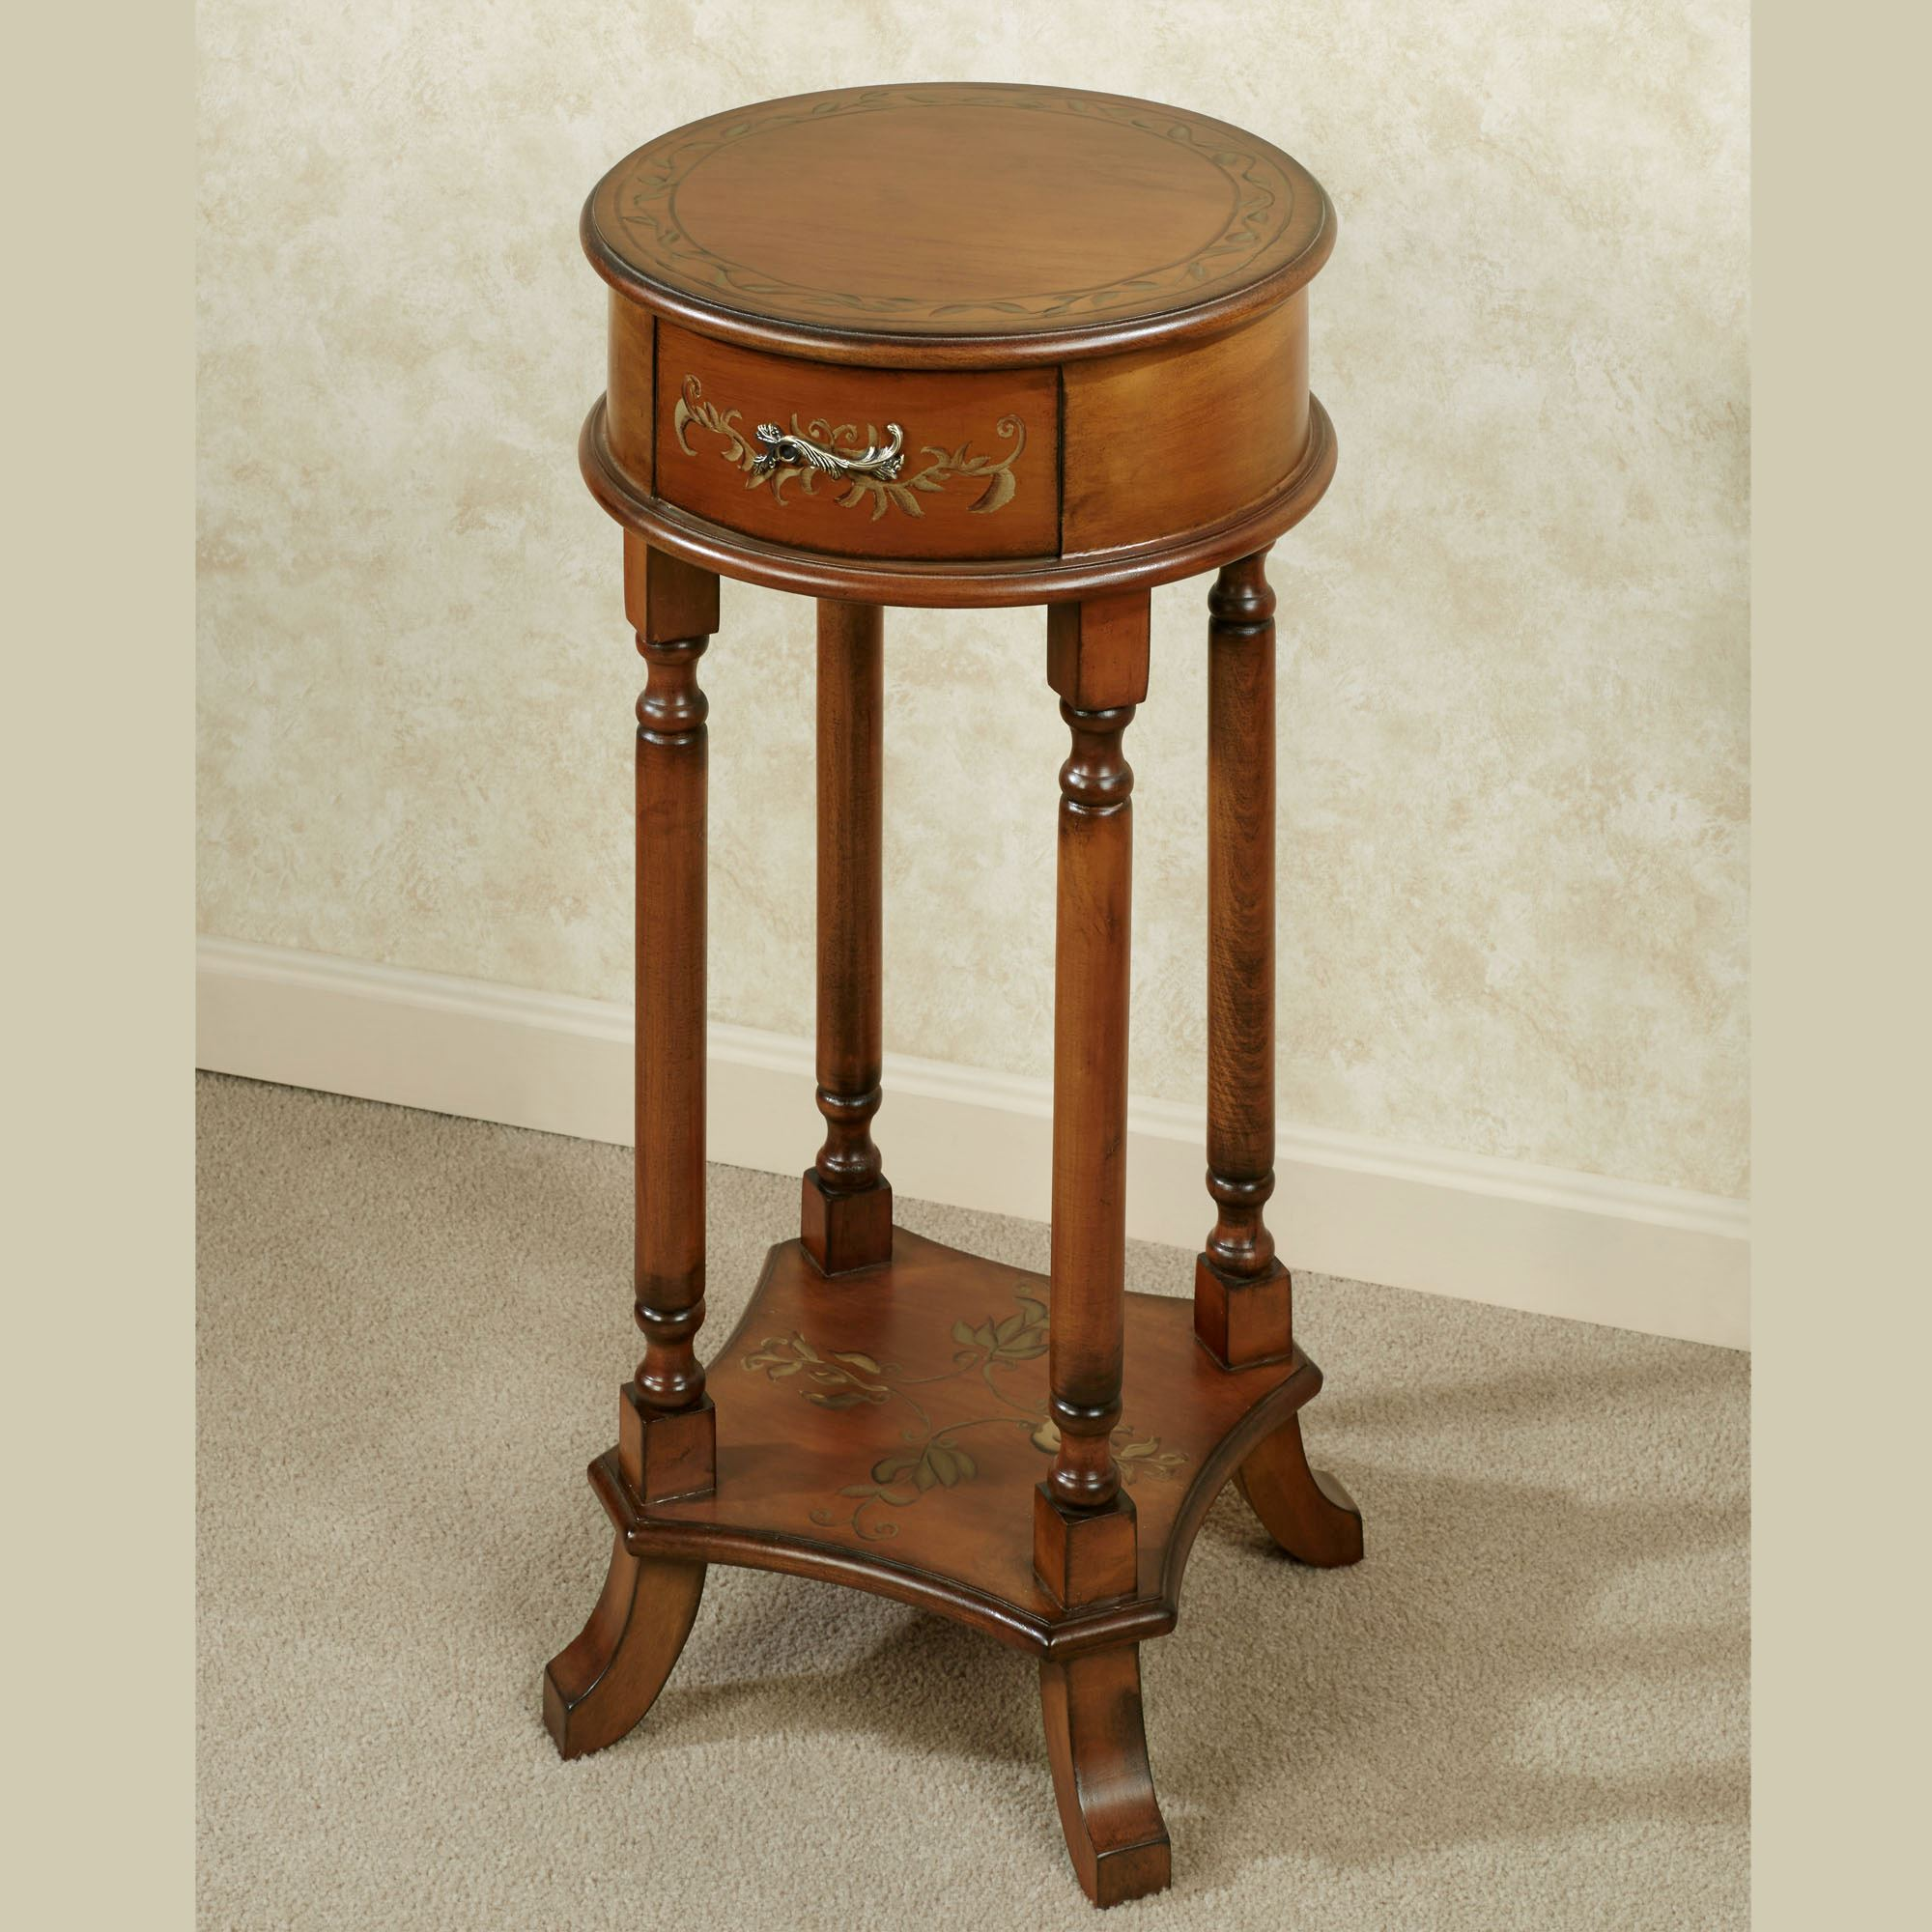 end table design classy round tables fabulousll cloth smallund accent sesigncorp fabulous with drawer small covers full size youth bedroom furniture modern houston bedside cabinet